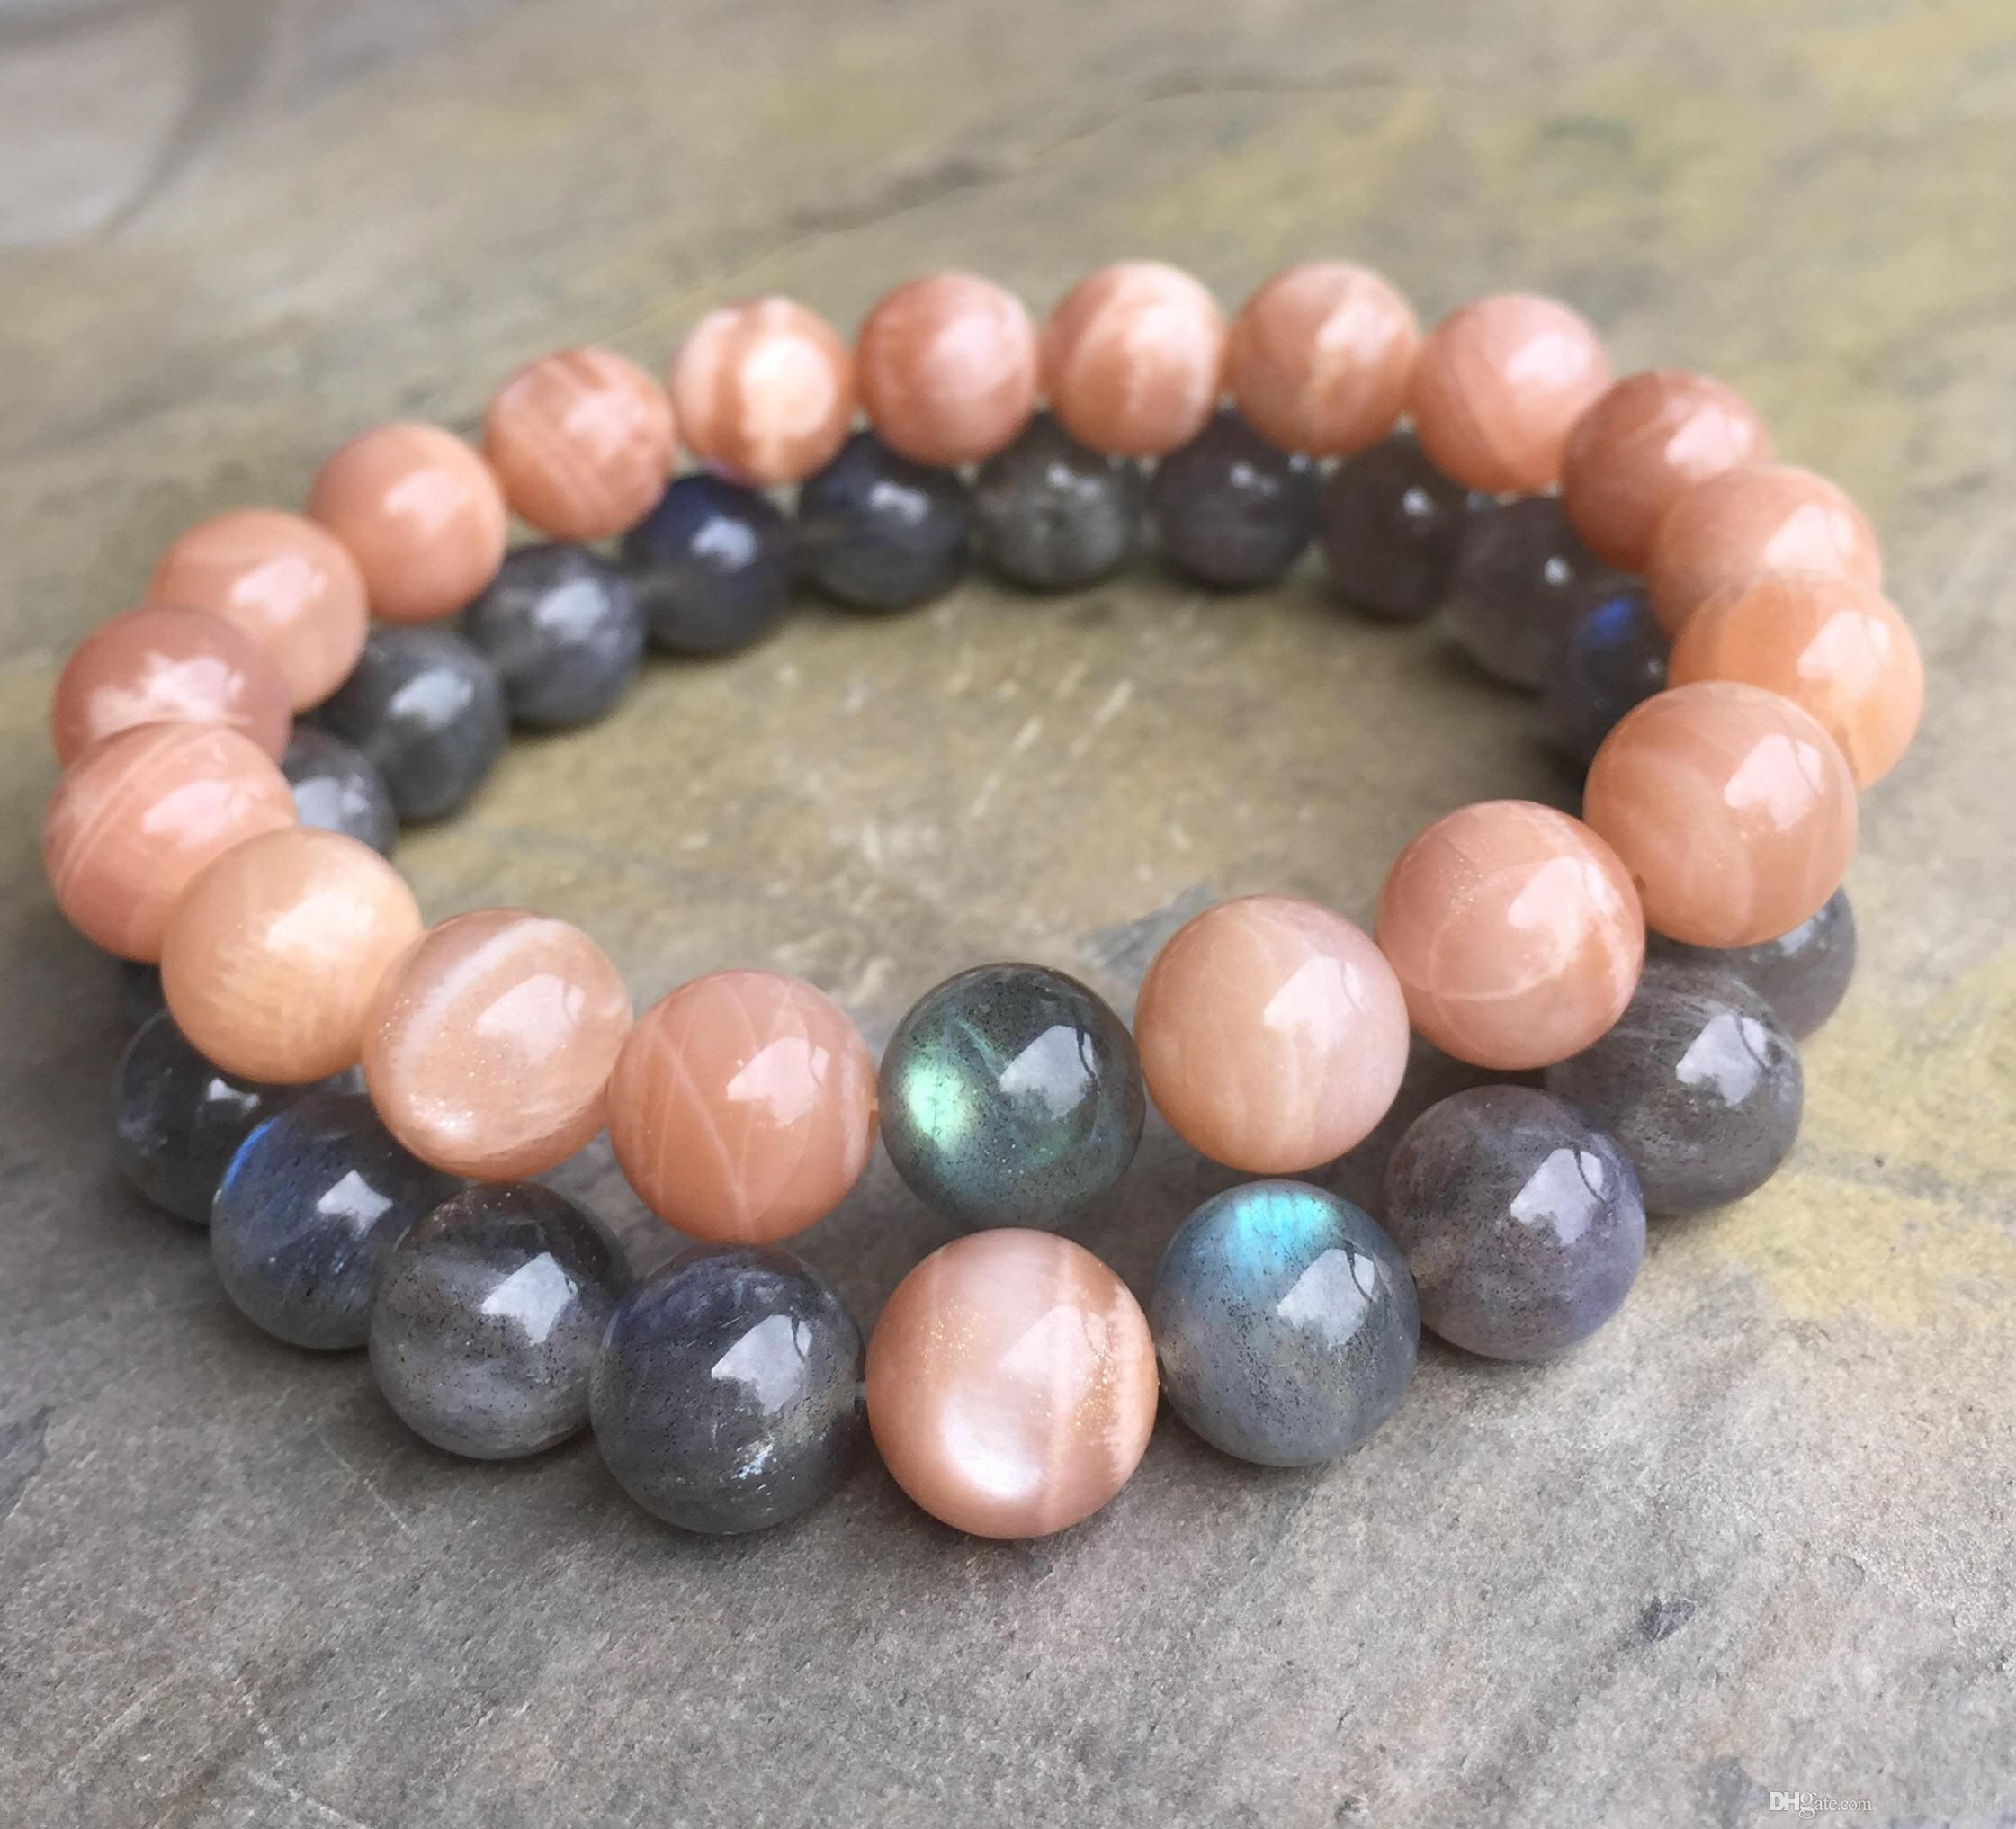 accessories jewelry lava beads natural bangle item chakras strand on stone from bracelets elastic yoga in men bracelet rock diffuser women